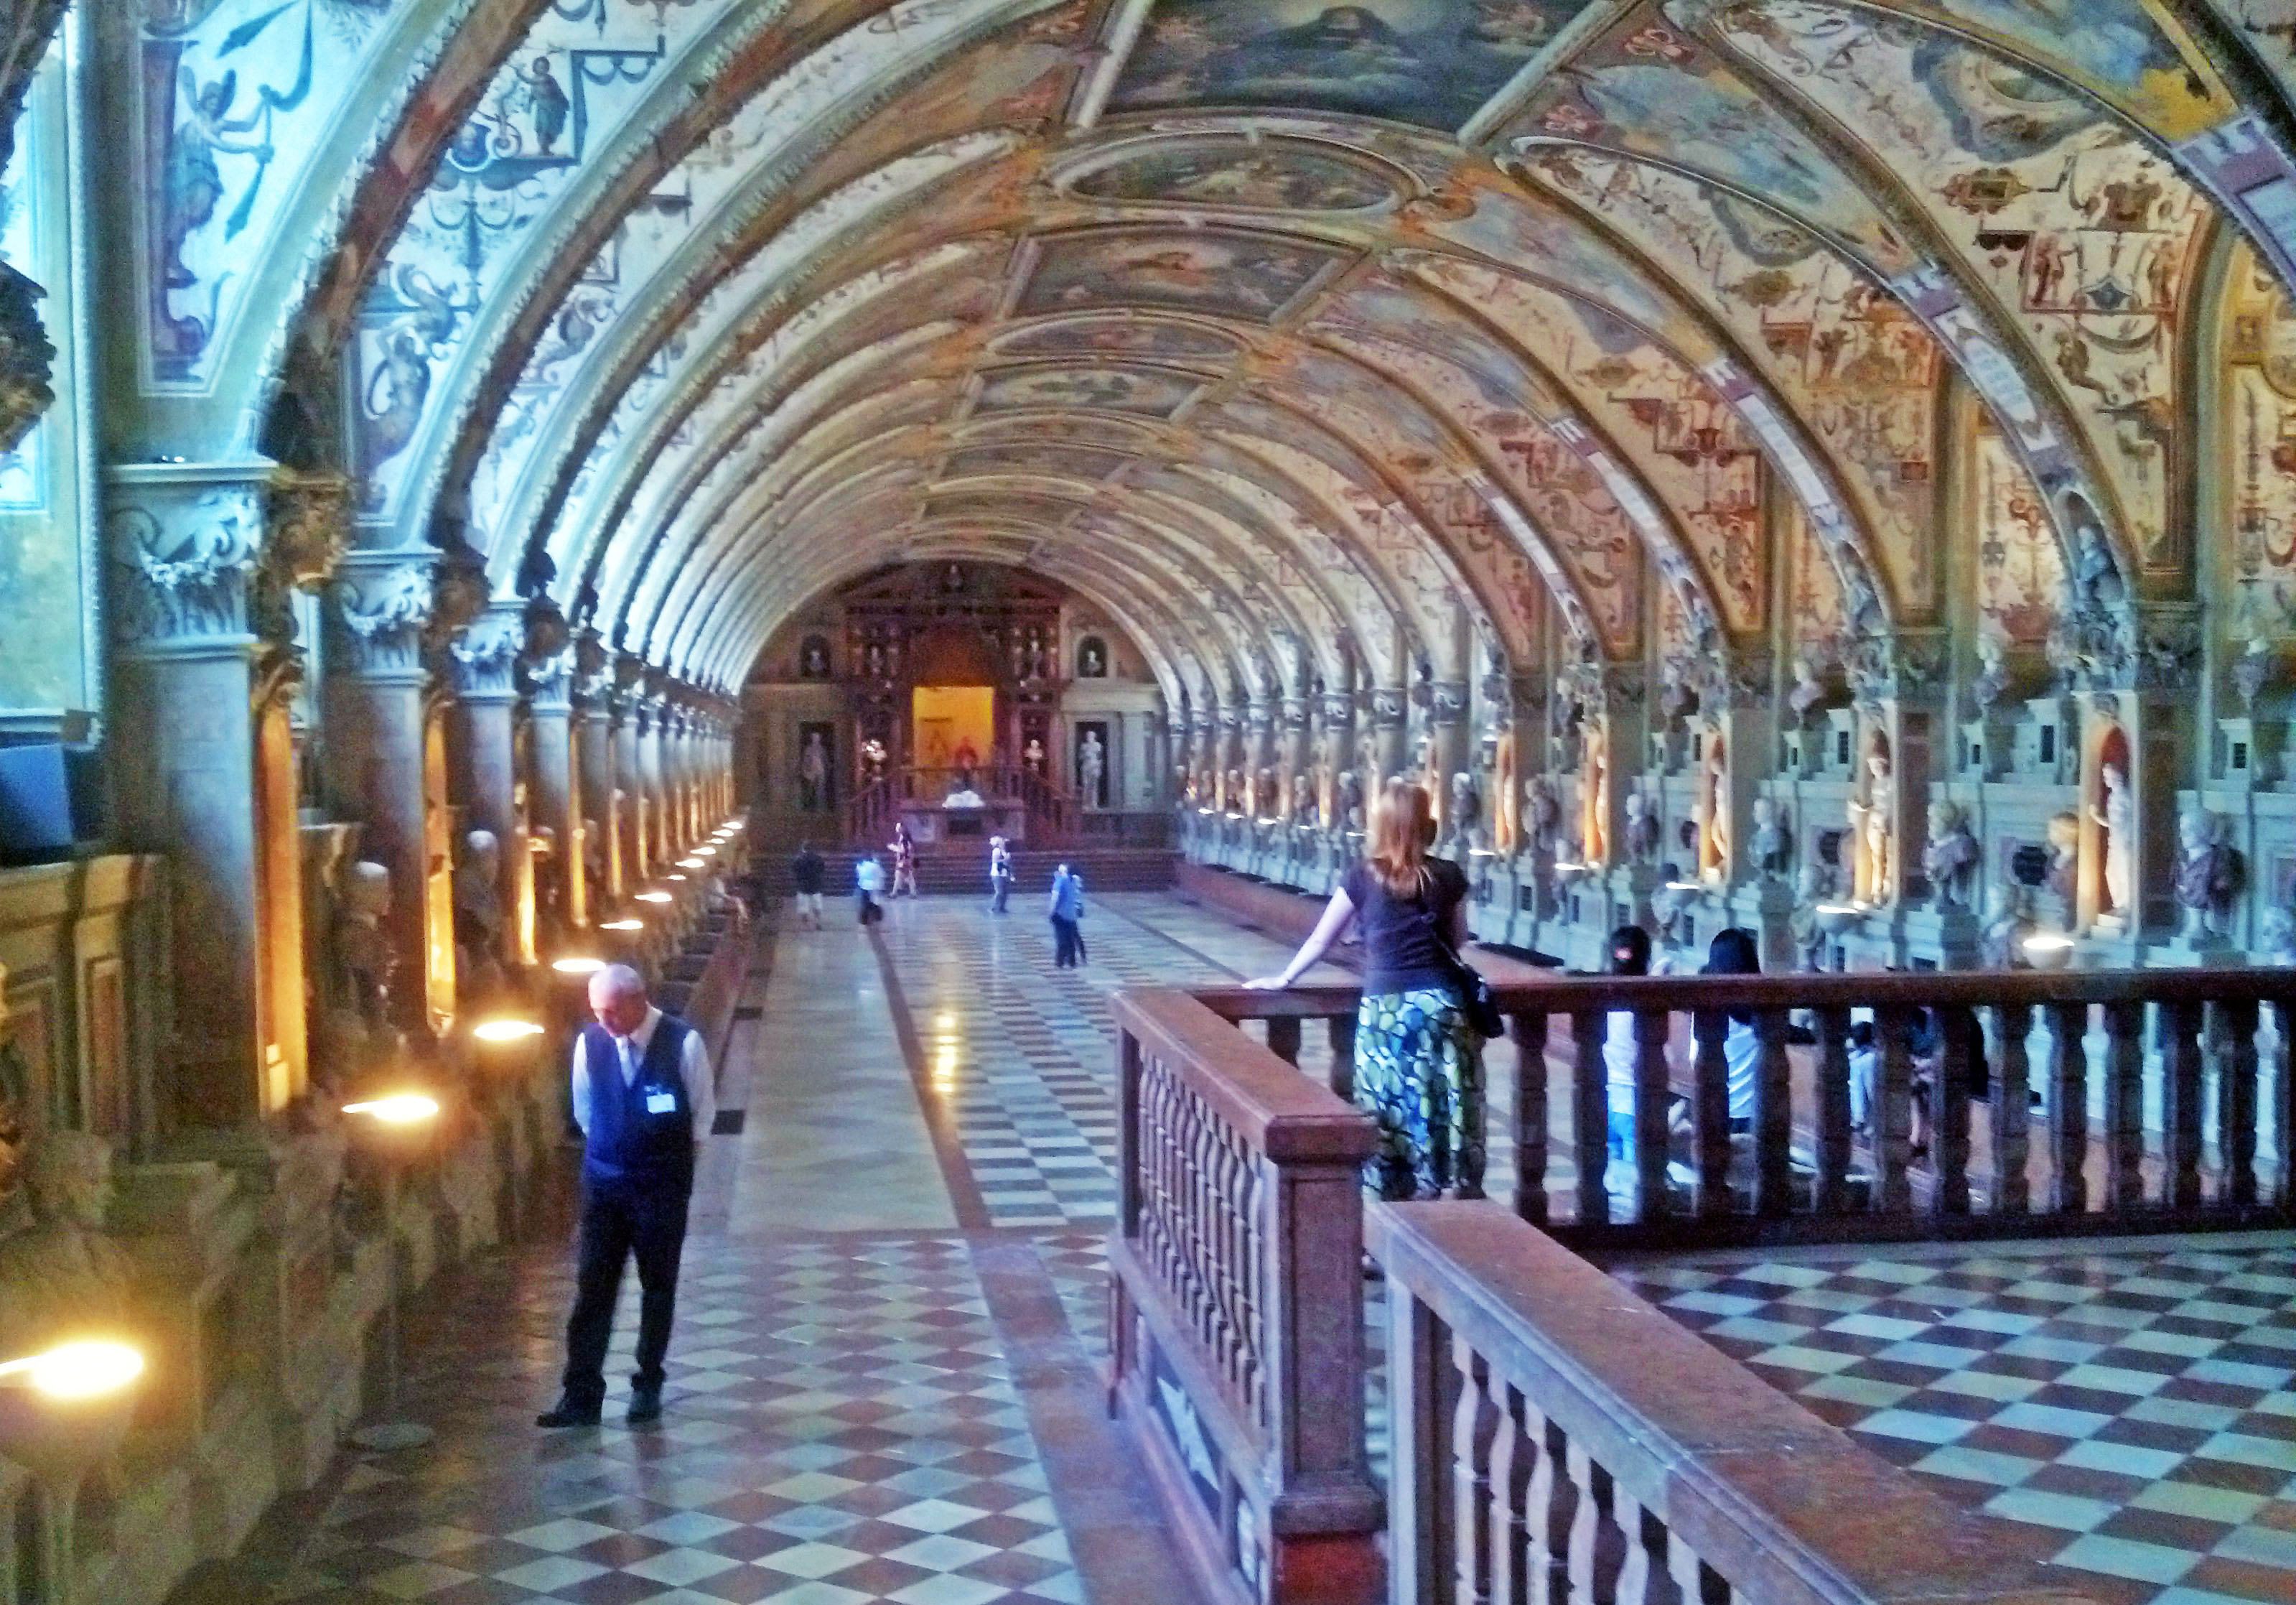 The sixty-six meter long Antiquarium.